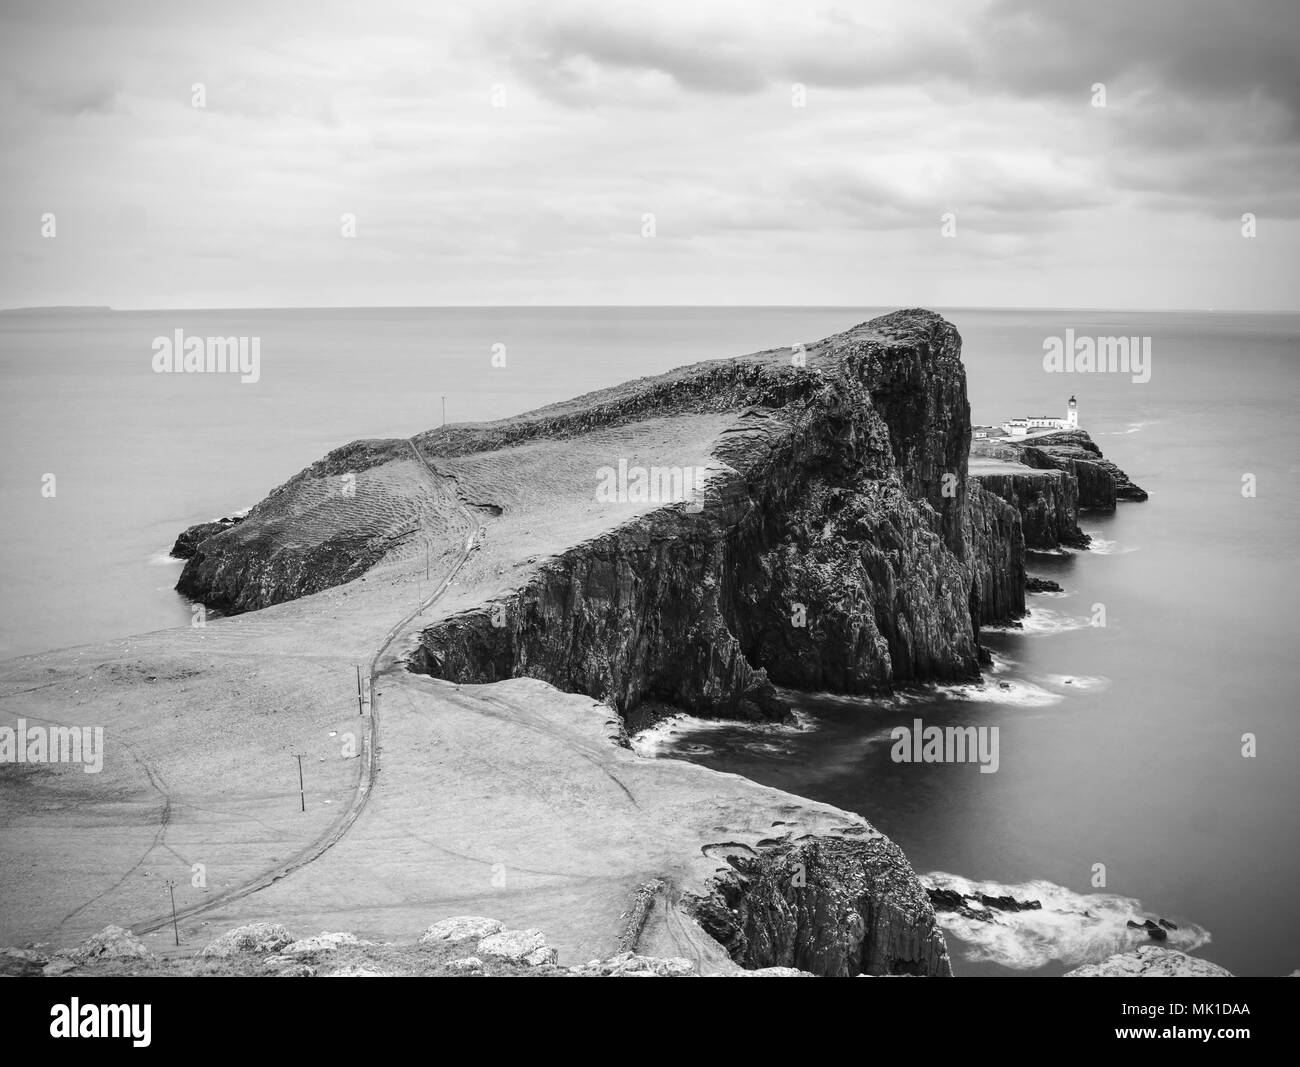 Cliffs of neist point cape and lighthouse in black and white popular travelers destination on isle of skye scotland